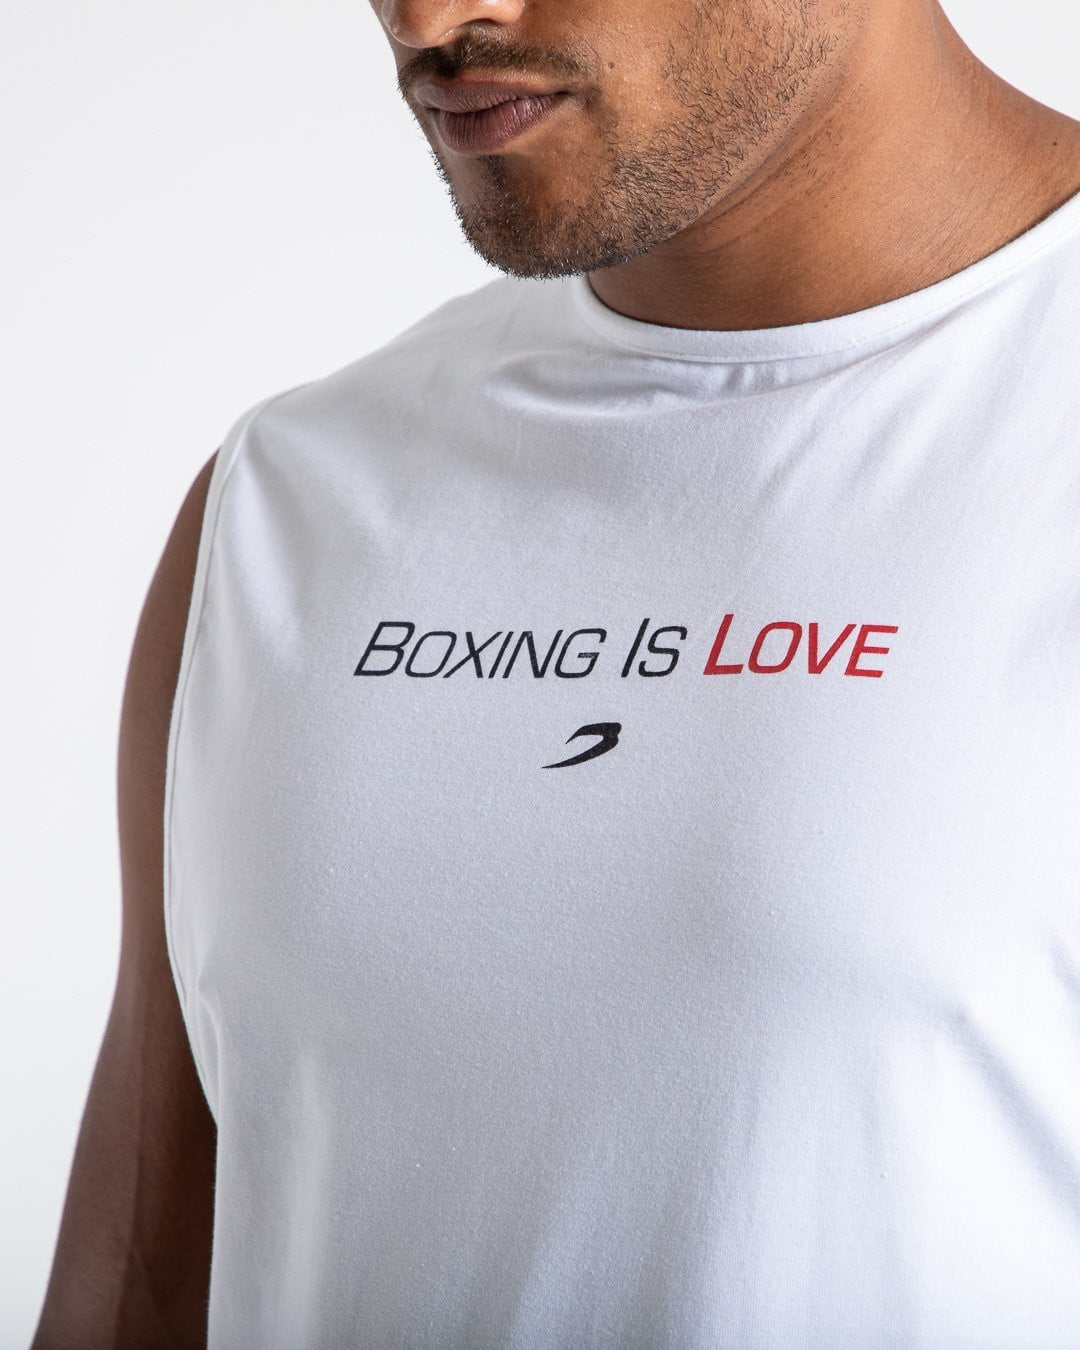 BOXING IS LOVE MUSCLE TANK - WHITE.